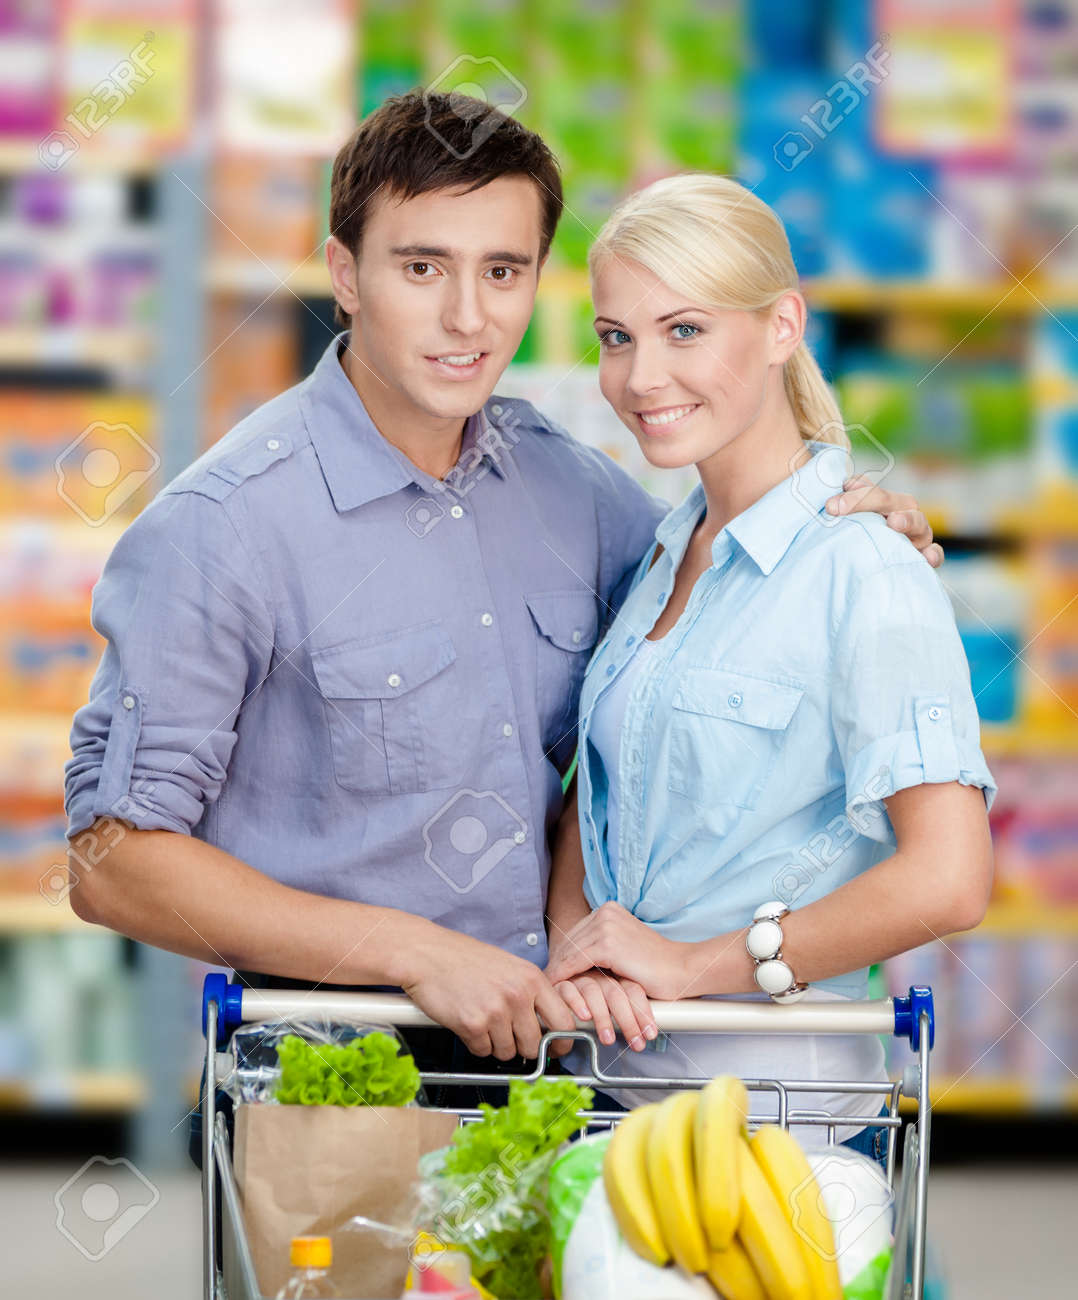 Half Length Portrait Of Couple In The Store With Cart Full Of